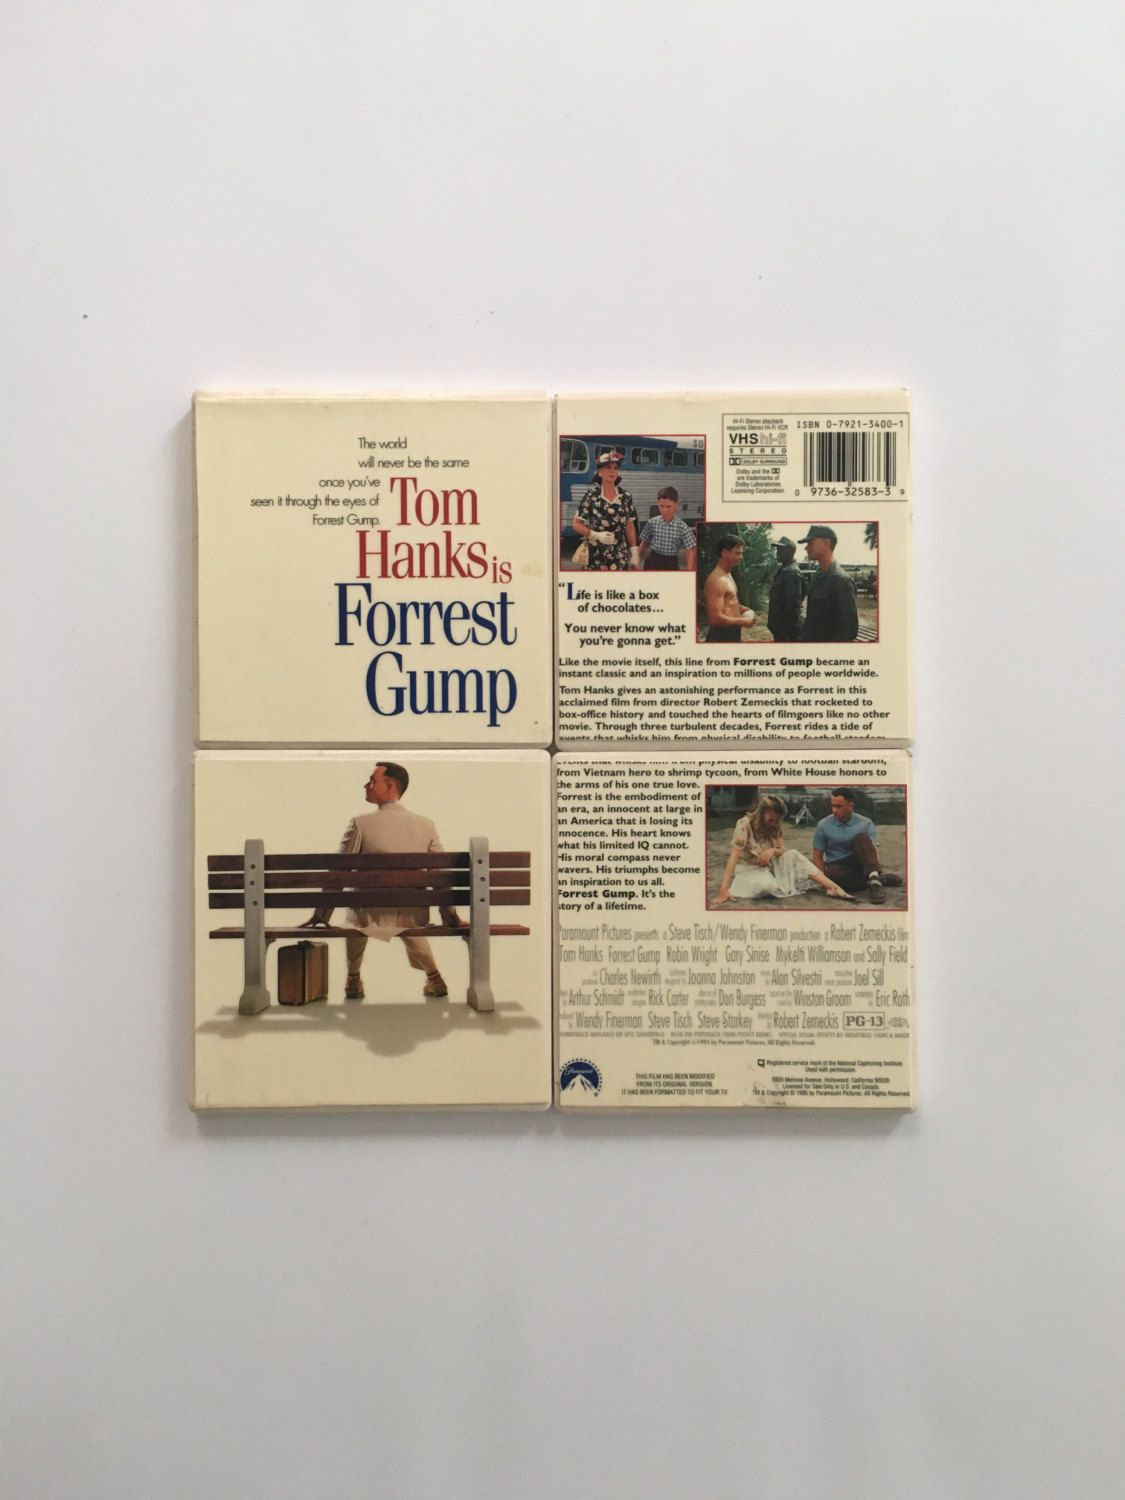 Forrest gump 1995 movie with actor tom hanks vintage vhs cover on a items similar to art coasters beautiful hand stamped cross ceramic coasters upcycled tiles christian art religious art cross coasters set of 4 on etsy dailygadgetfo Choice Image